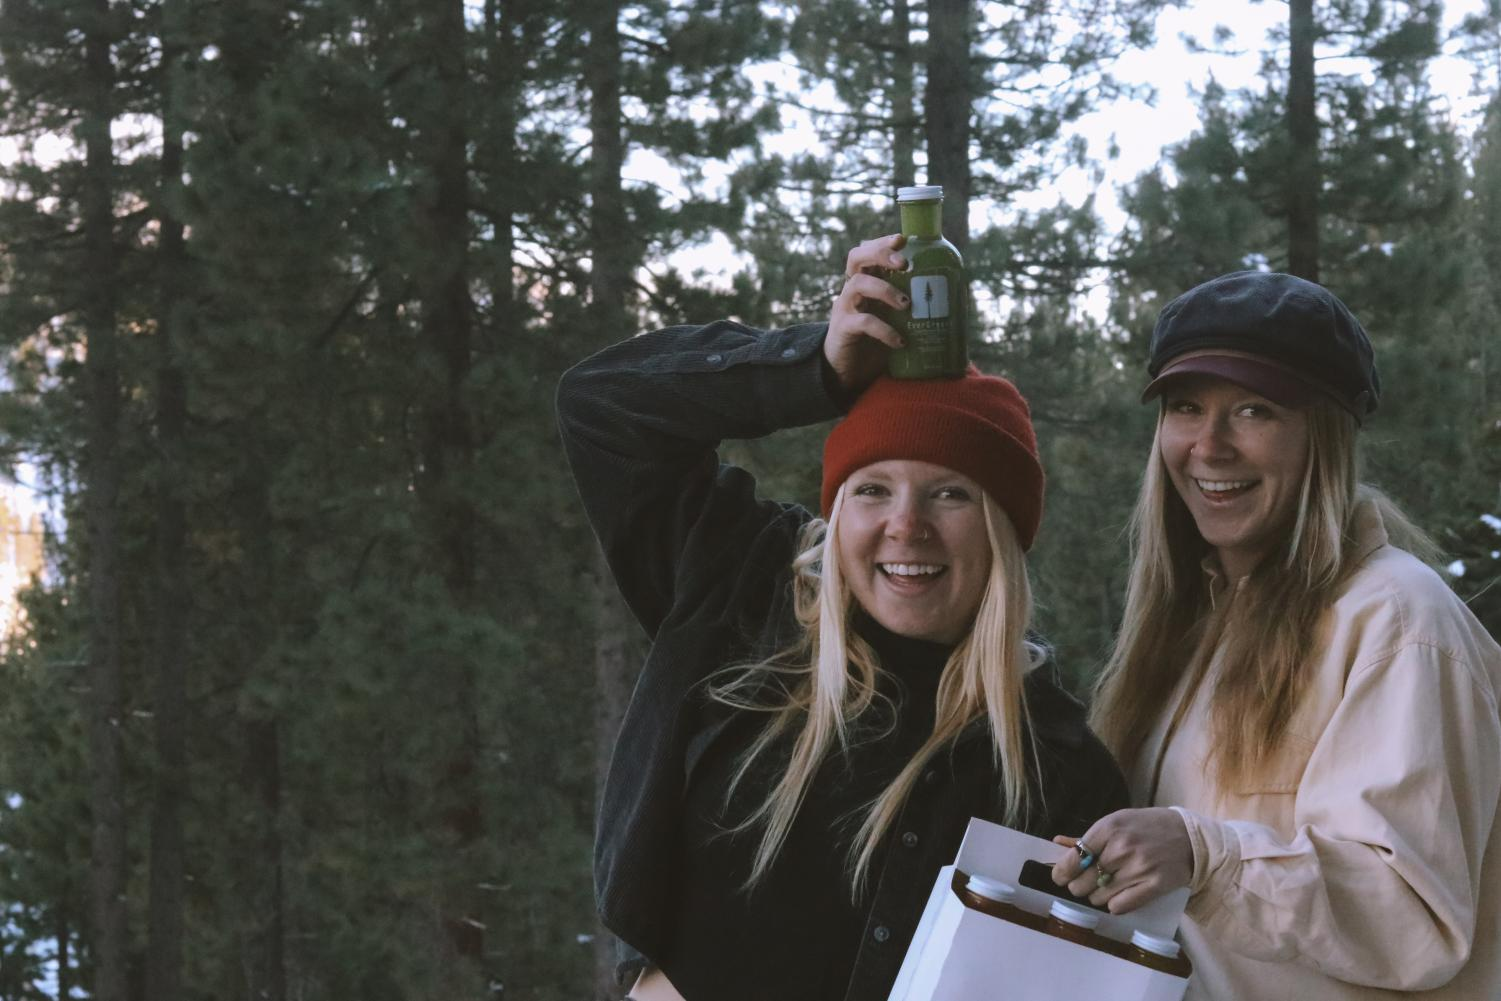 SNU students and sisters Emme and Maea Wistrom pose in the evergreens with an EverGreens juice six-pack.